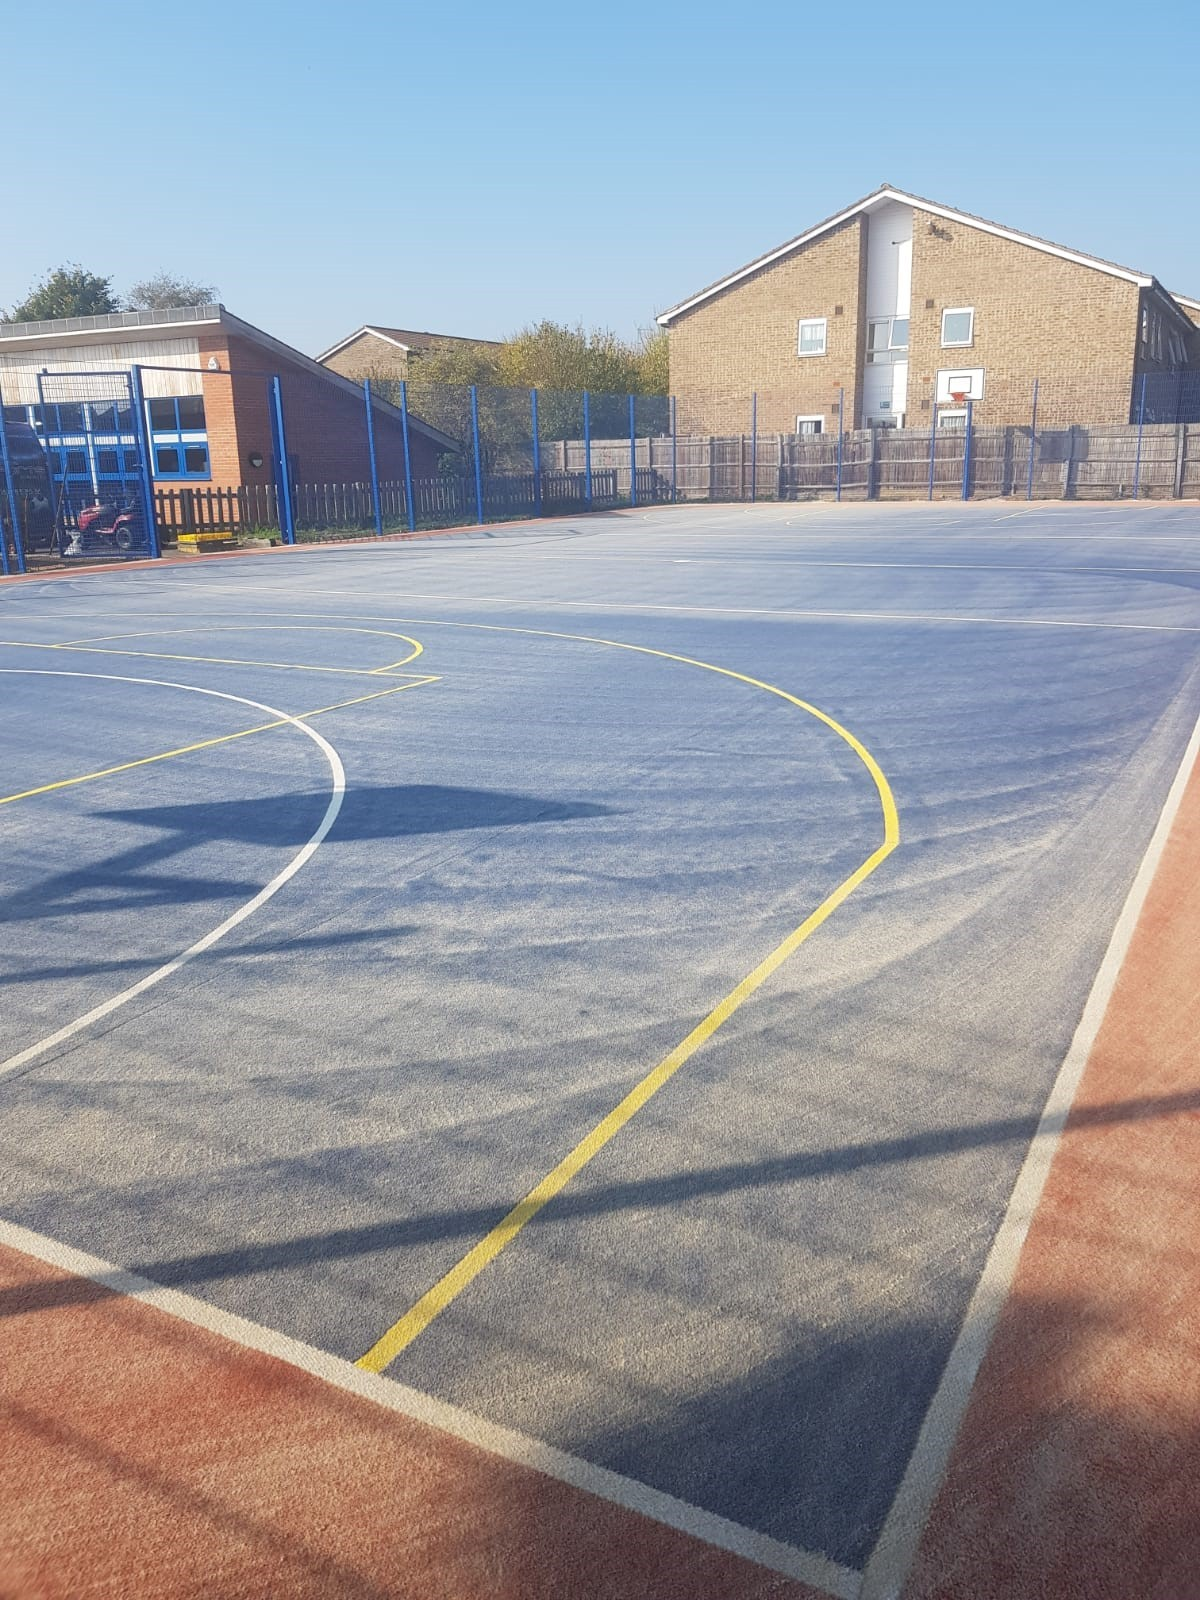 Recently completed MUGA and fencing works for Bishops Primary School in Essex